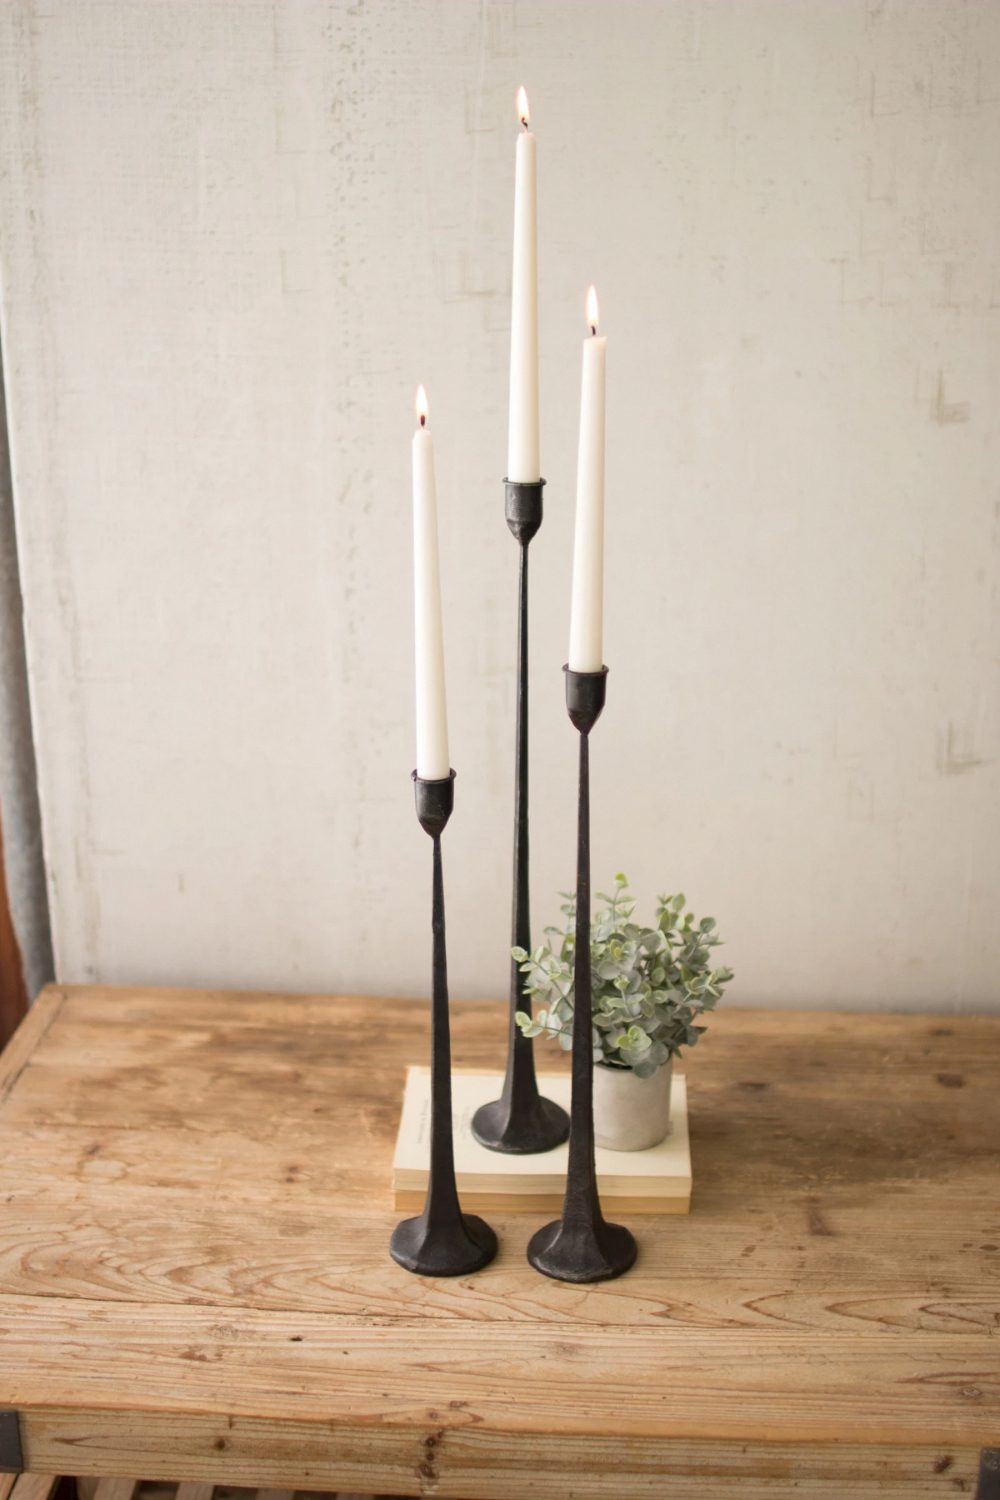 Black Taper Tall Cast Iron Candle Holders Cbl1020 Kalalou Set Of 3 Slim Skinny Iron Candle Holders Cast Iron Candle Holder Farmhouse Candle Holders